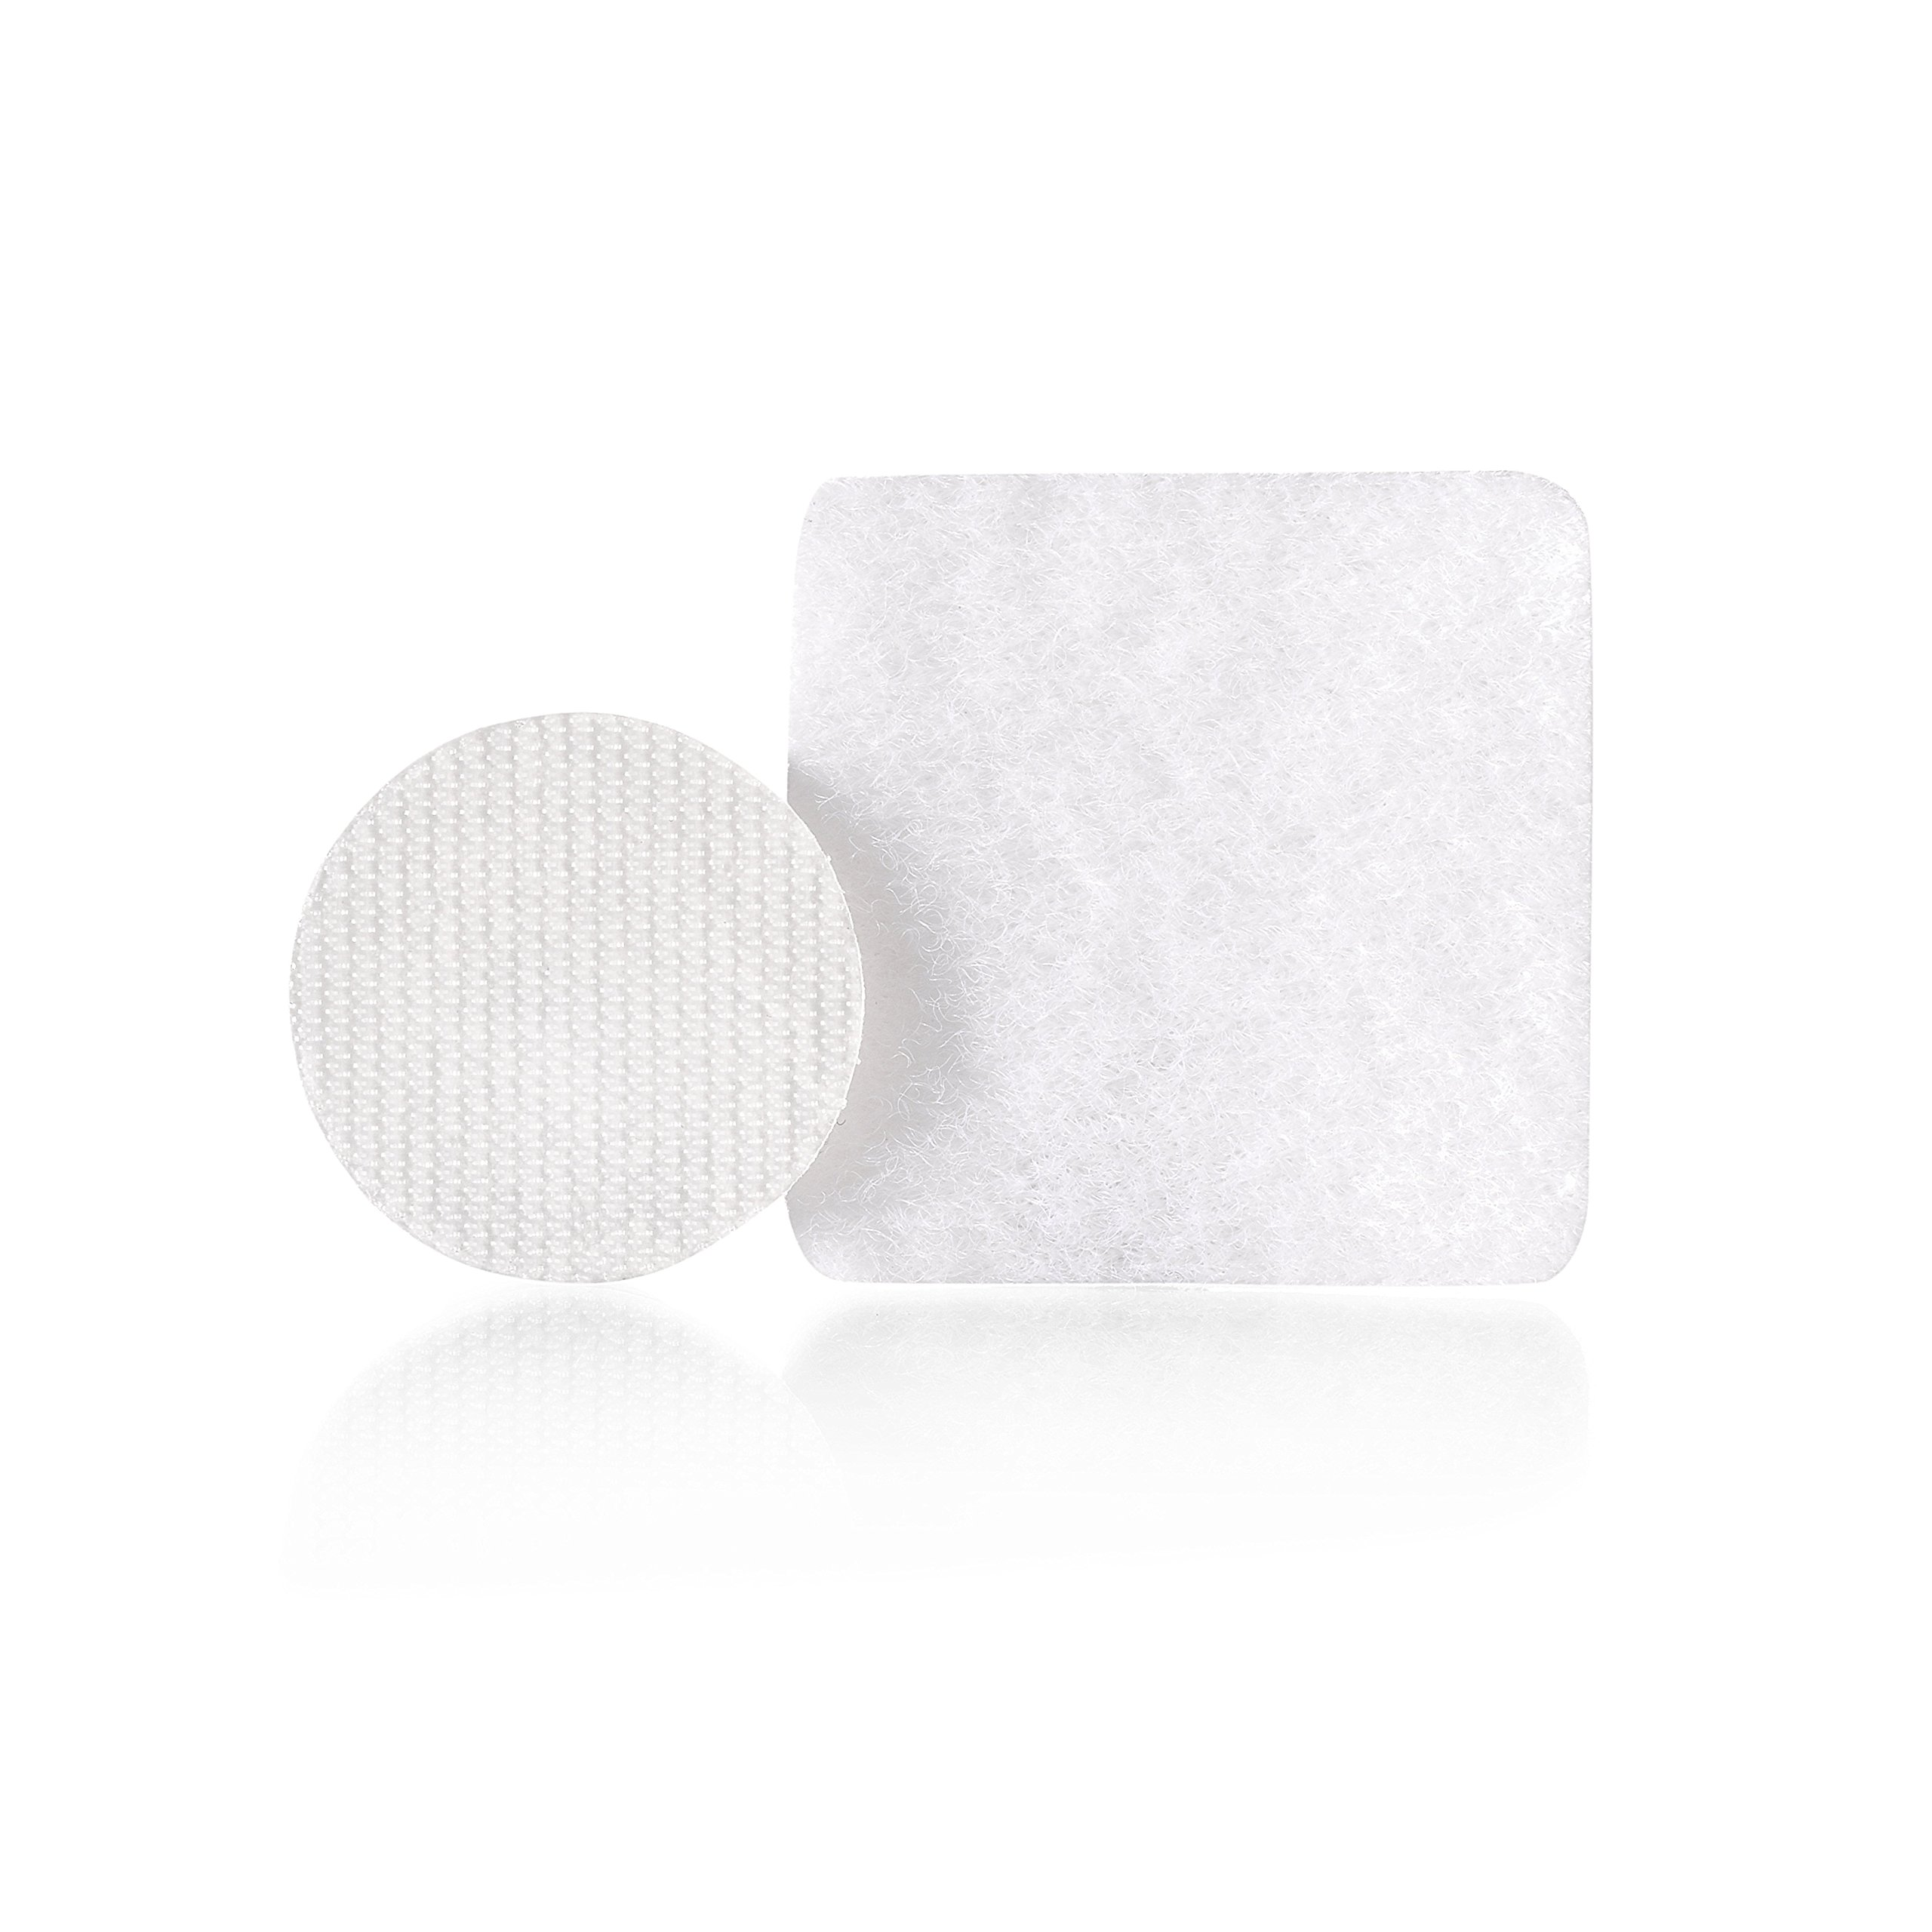 VELCRO Brand - Thin Hanging Strips: Adhesive that removes cleanly - 7/8'' Coins / 1.25'' Squares, 36 Sets, 1/4 lb - White